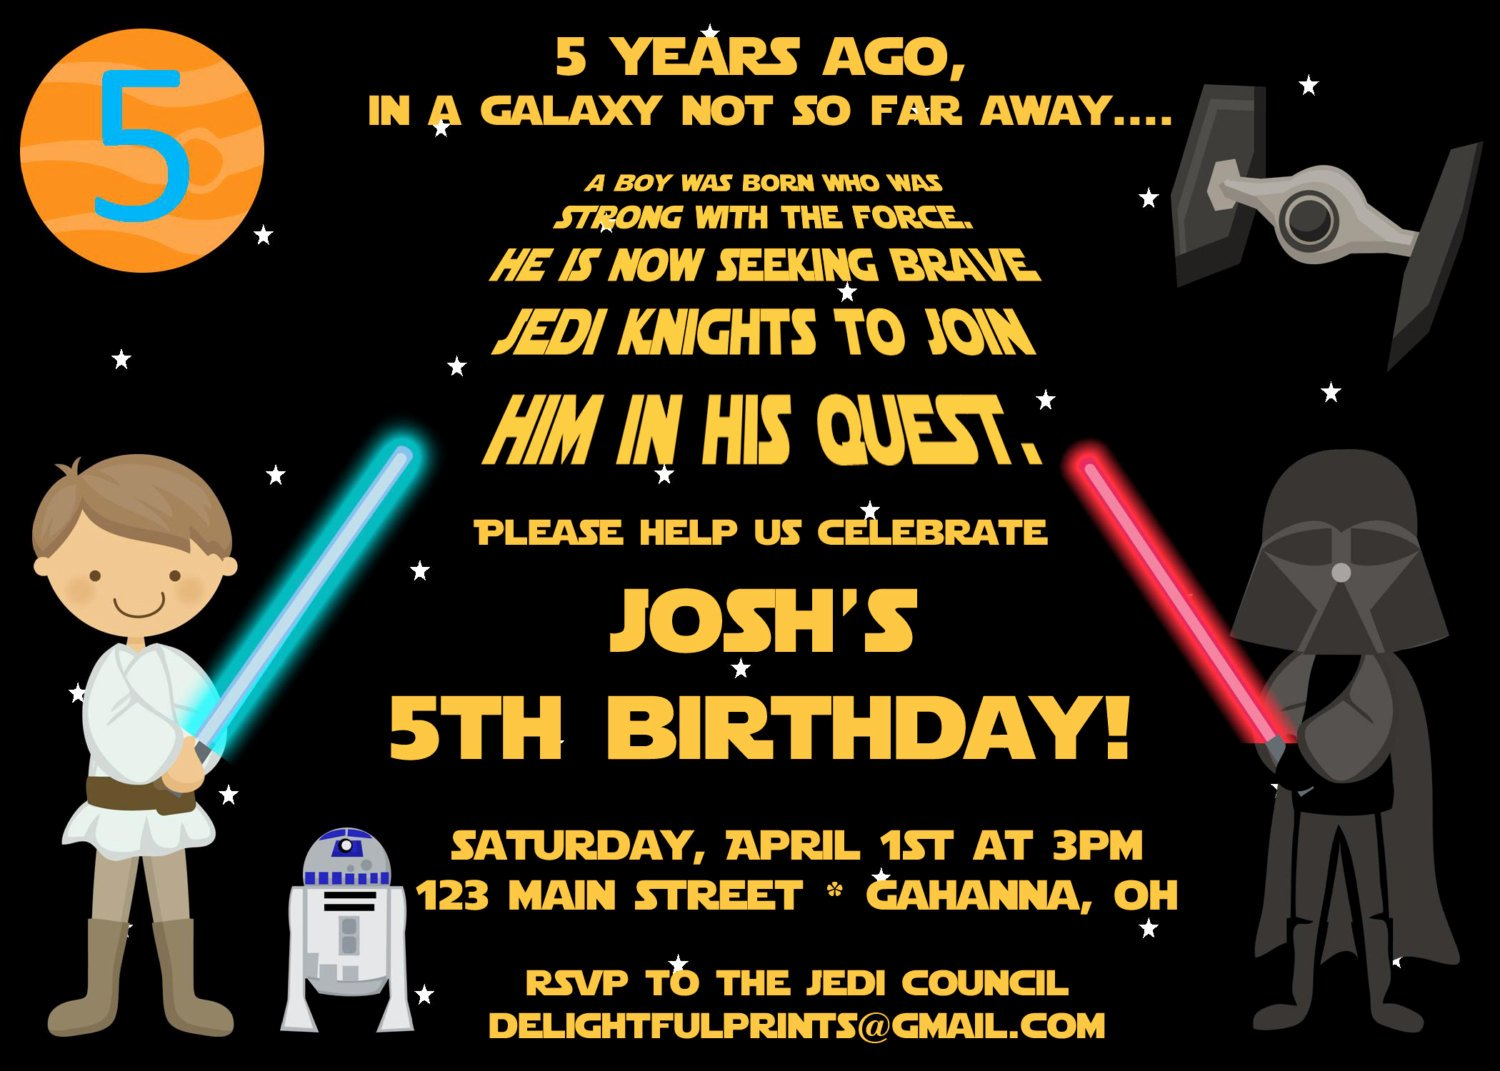 Star Wars Birthday Invites Luxury Star Wars Birthday Party Invitations Free Invitation Templates Drevio